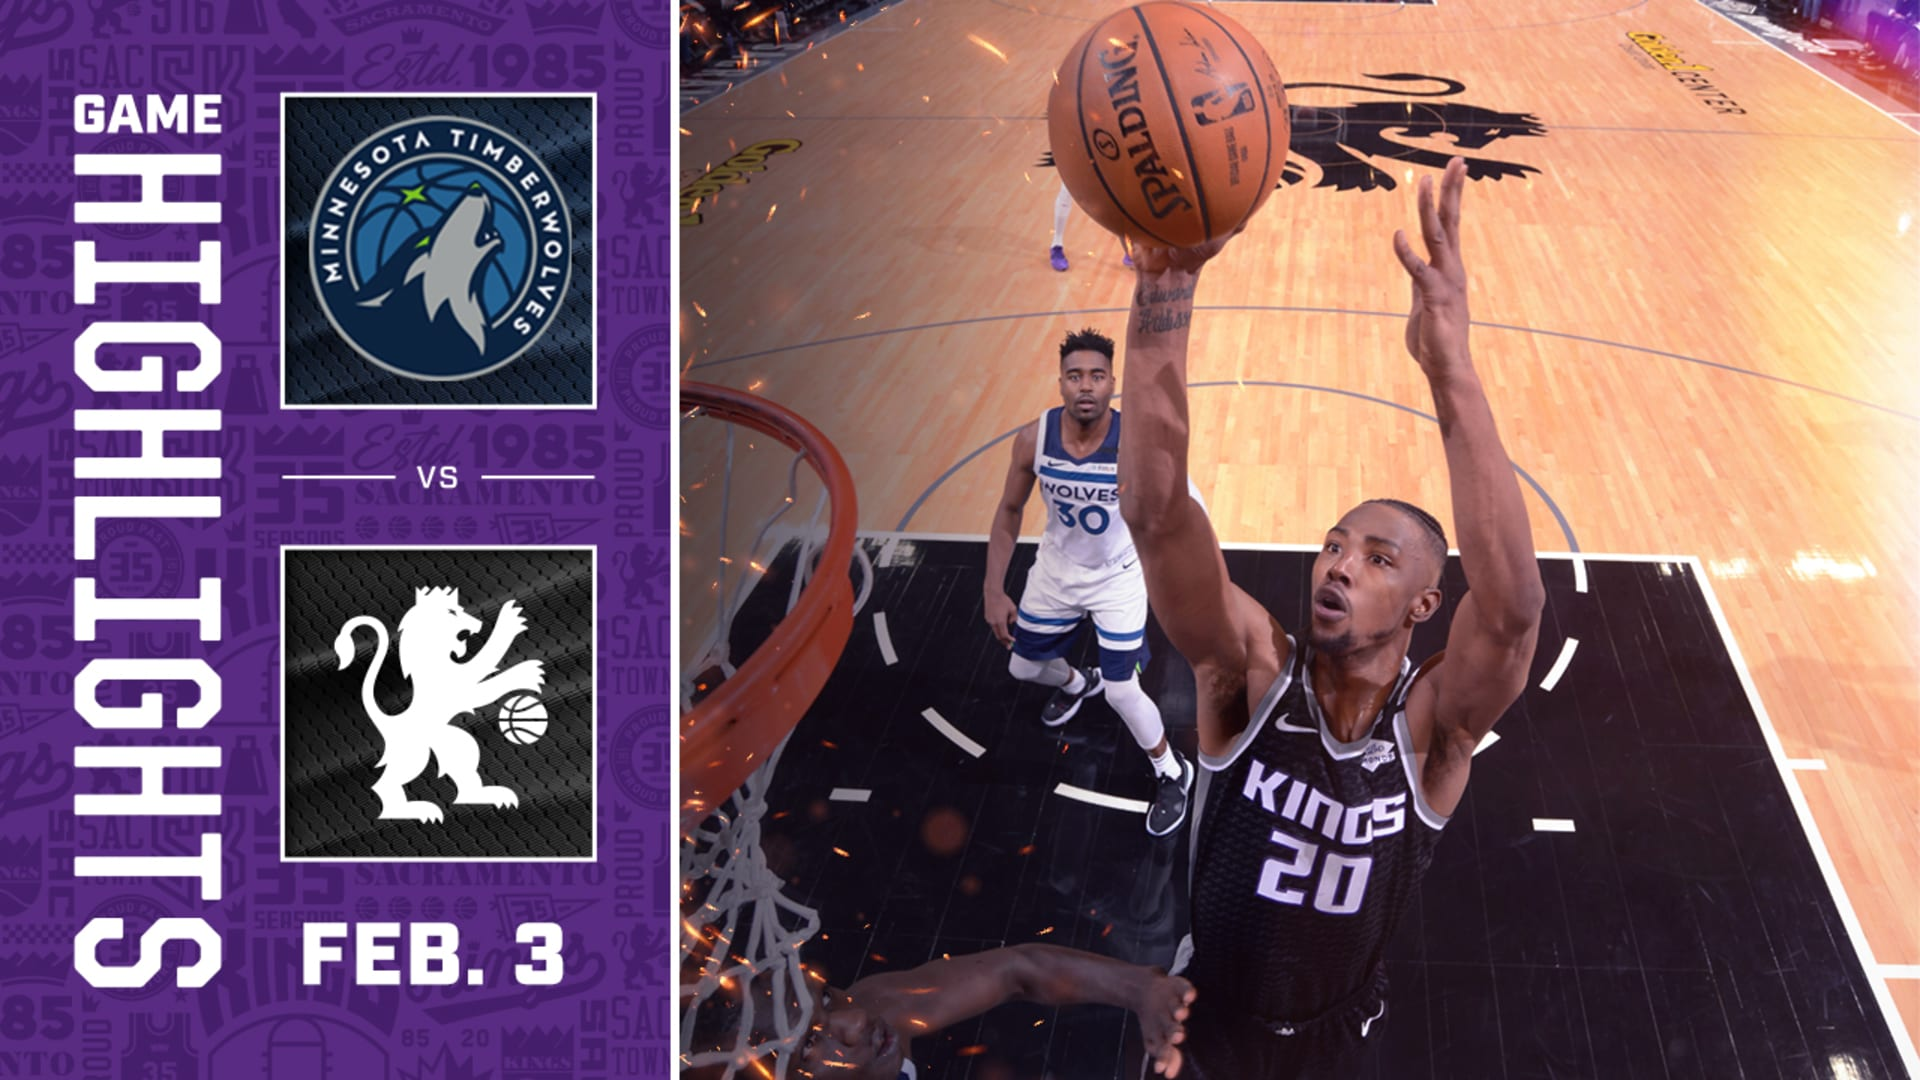 Kings Get Back on Track with Win Over Minnesota   Kings vs Timberwolves 02.03.20